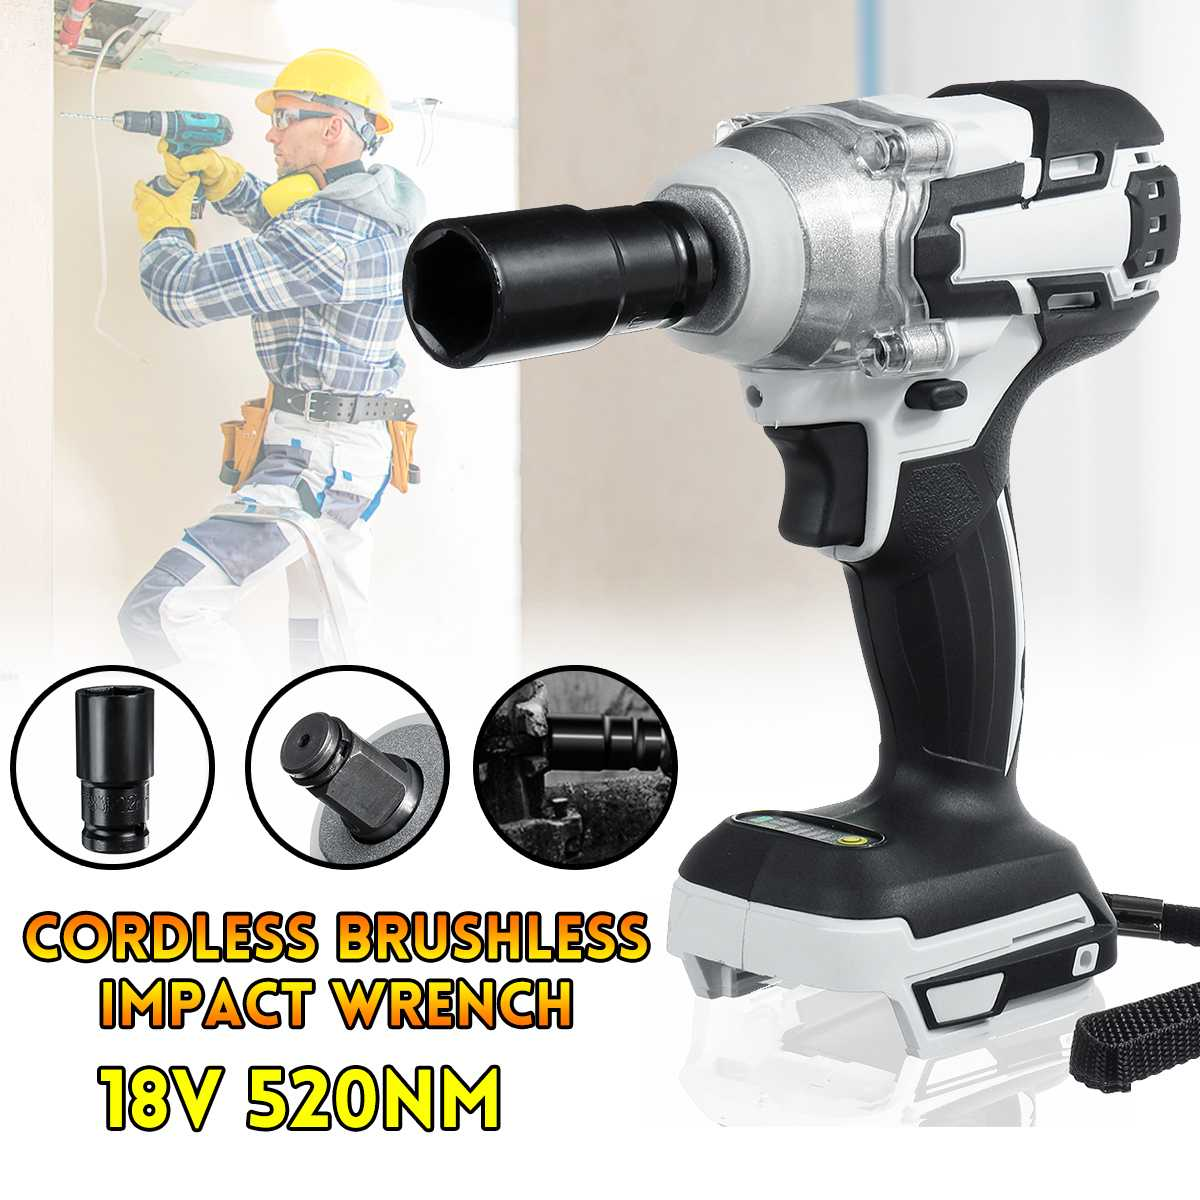 18V 520N.M Brushless Impact Wrench Cordless Electric 1/2